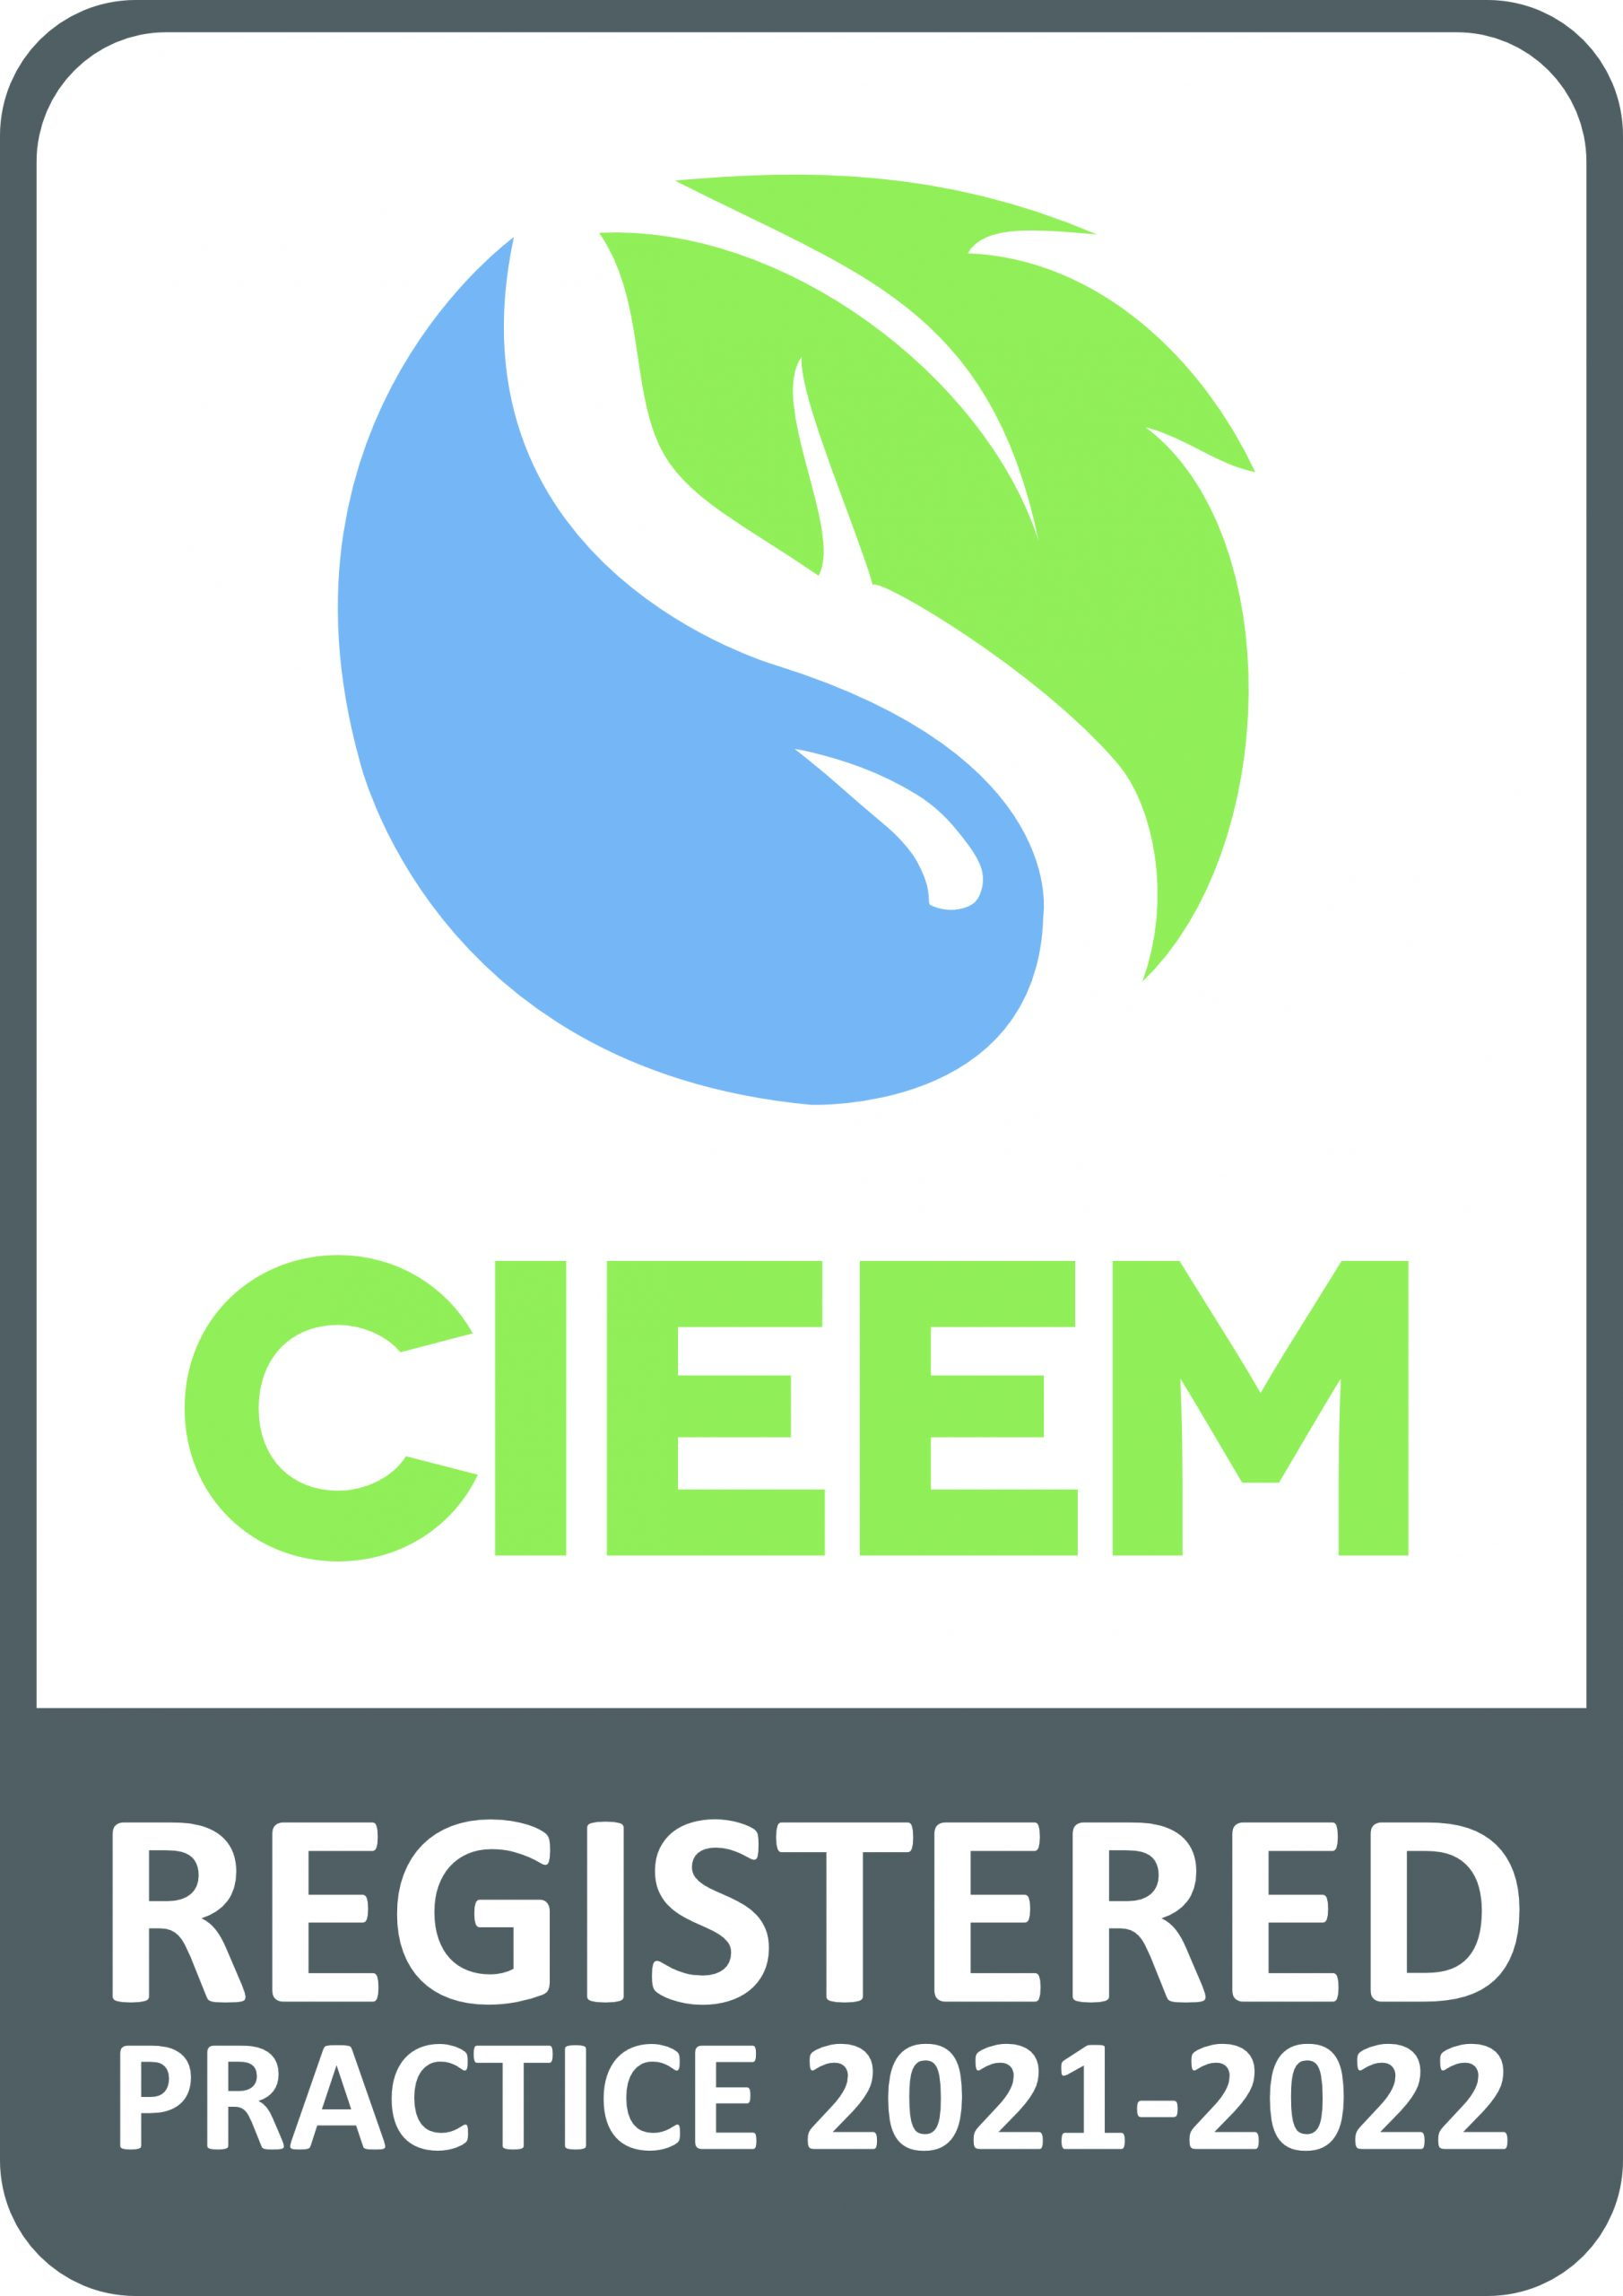 CIEEM Registered Practice logo 2021 2022